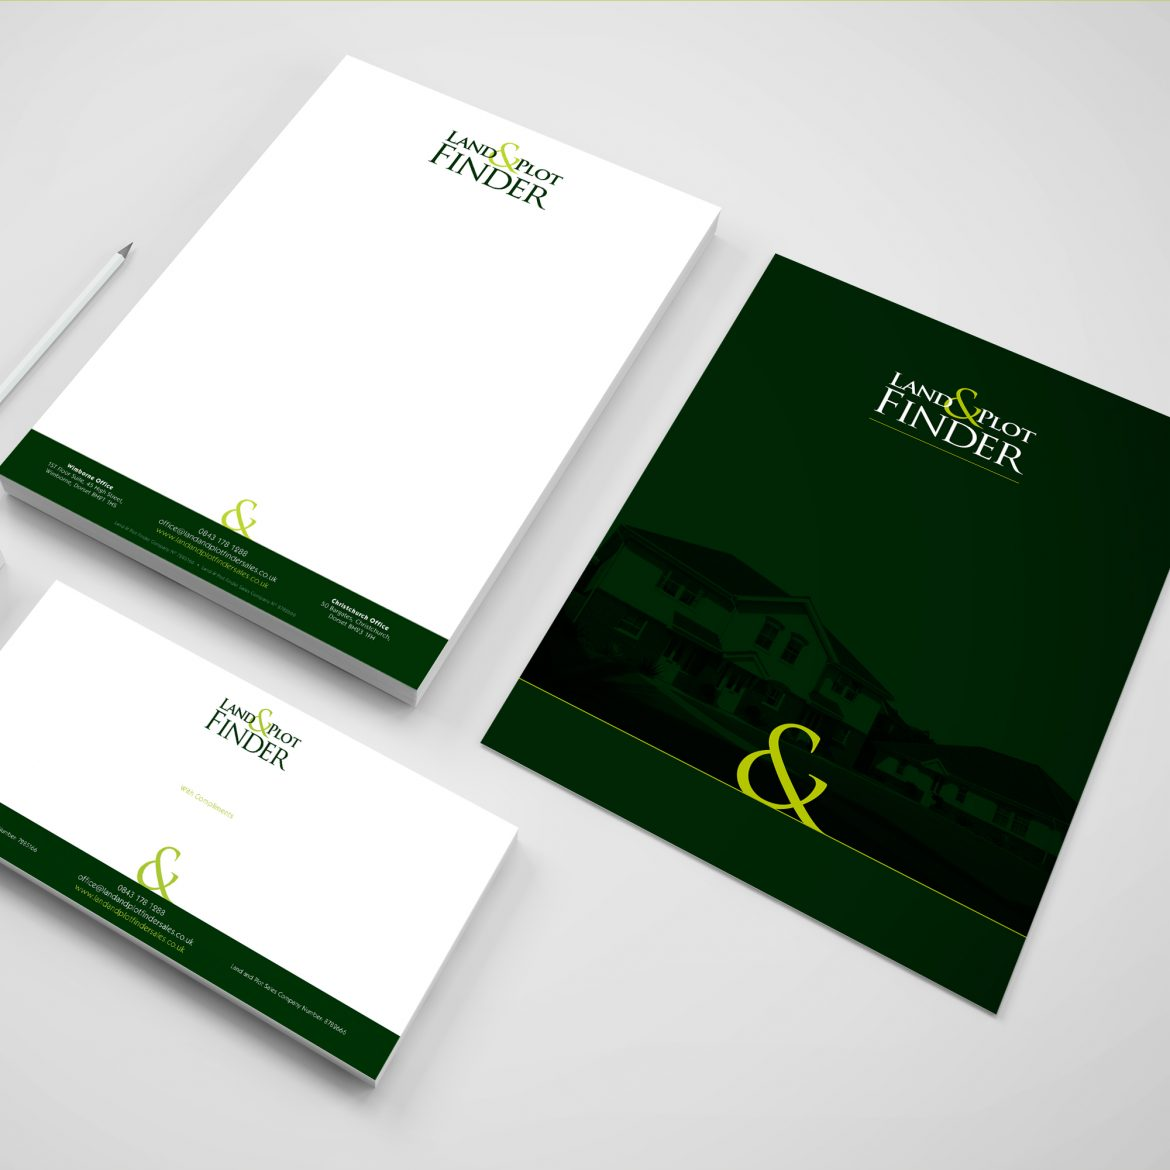 land & plot finder stationary design